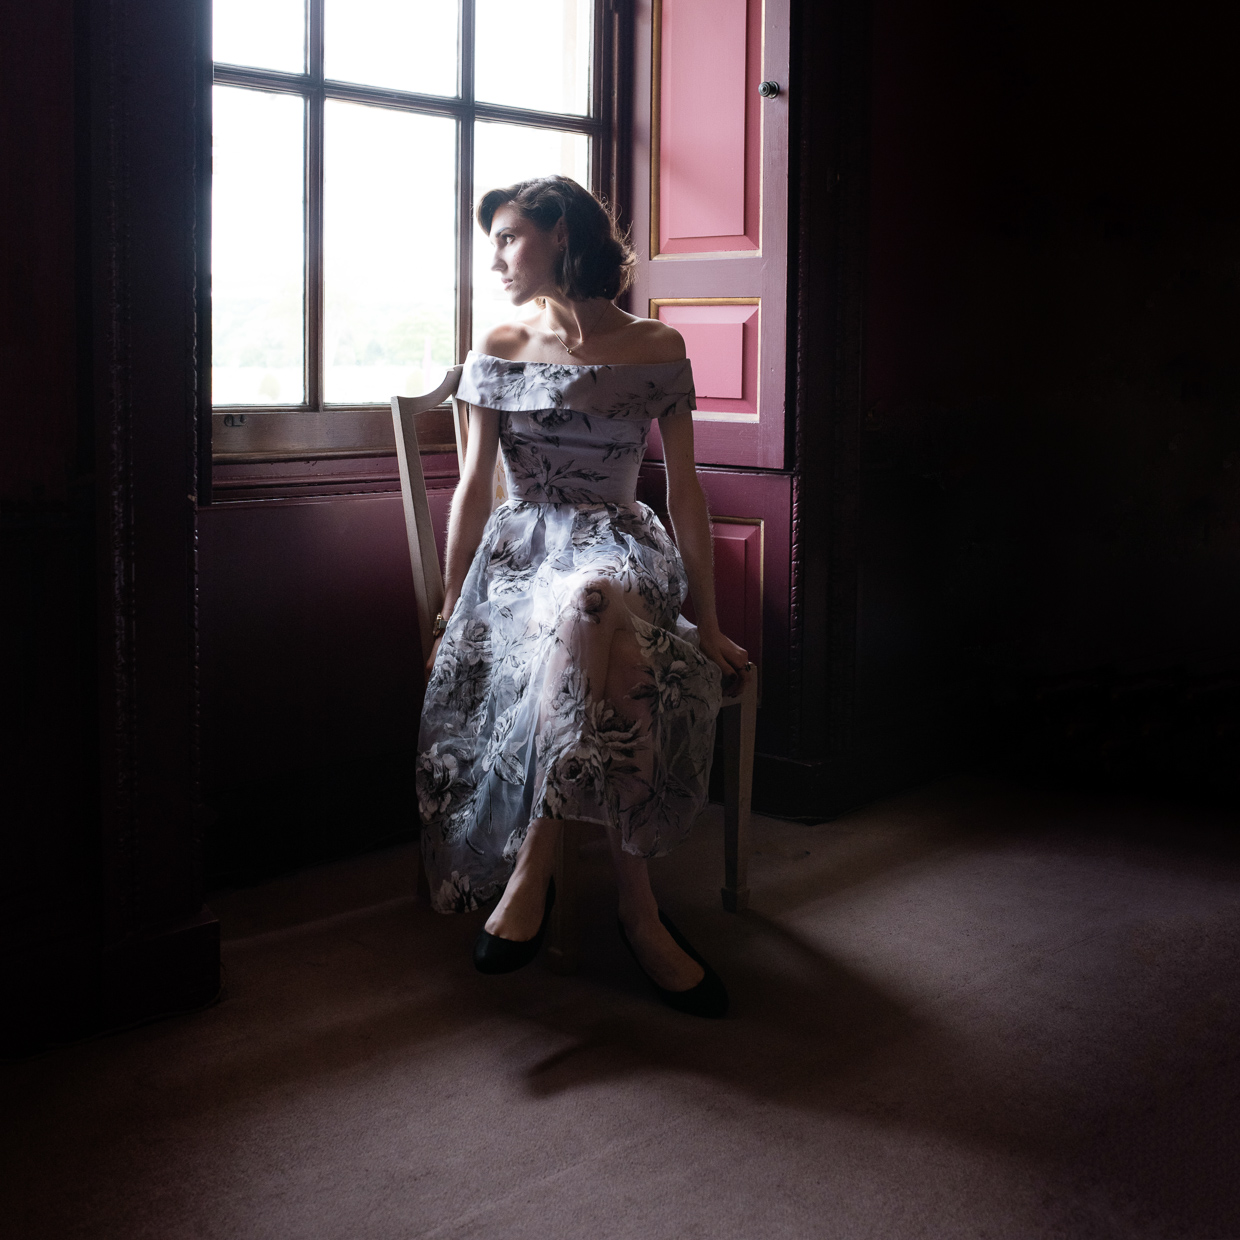 Hannah Grace Taylor in an amazing dress by a window at Wimpole Estate